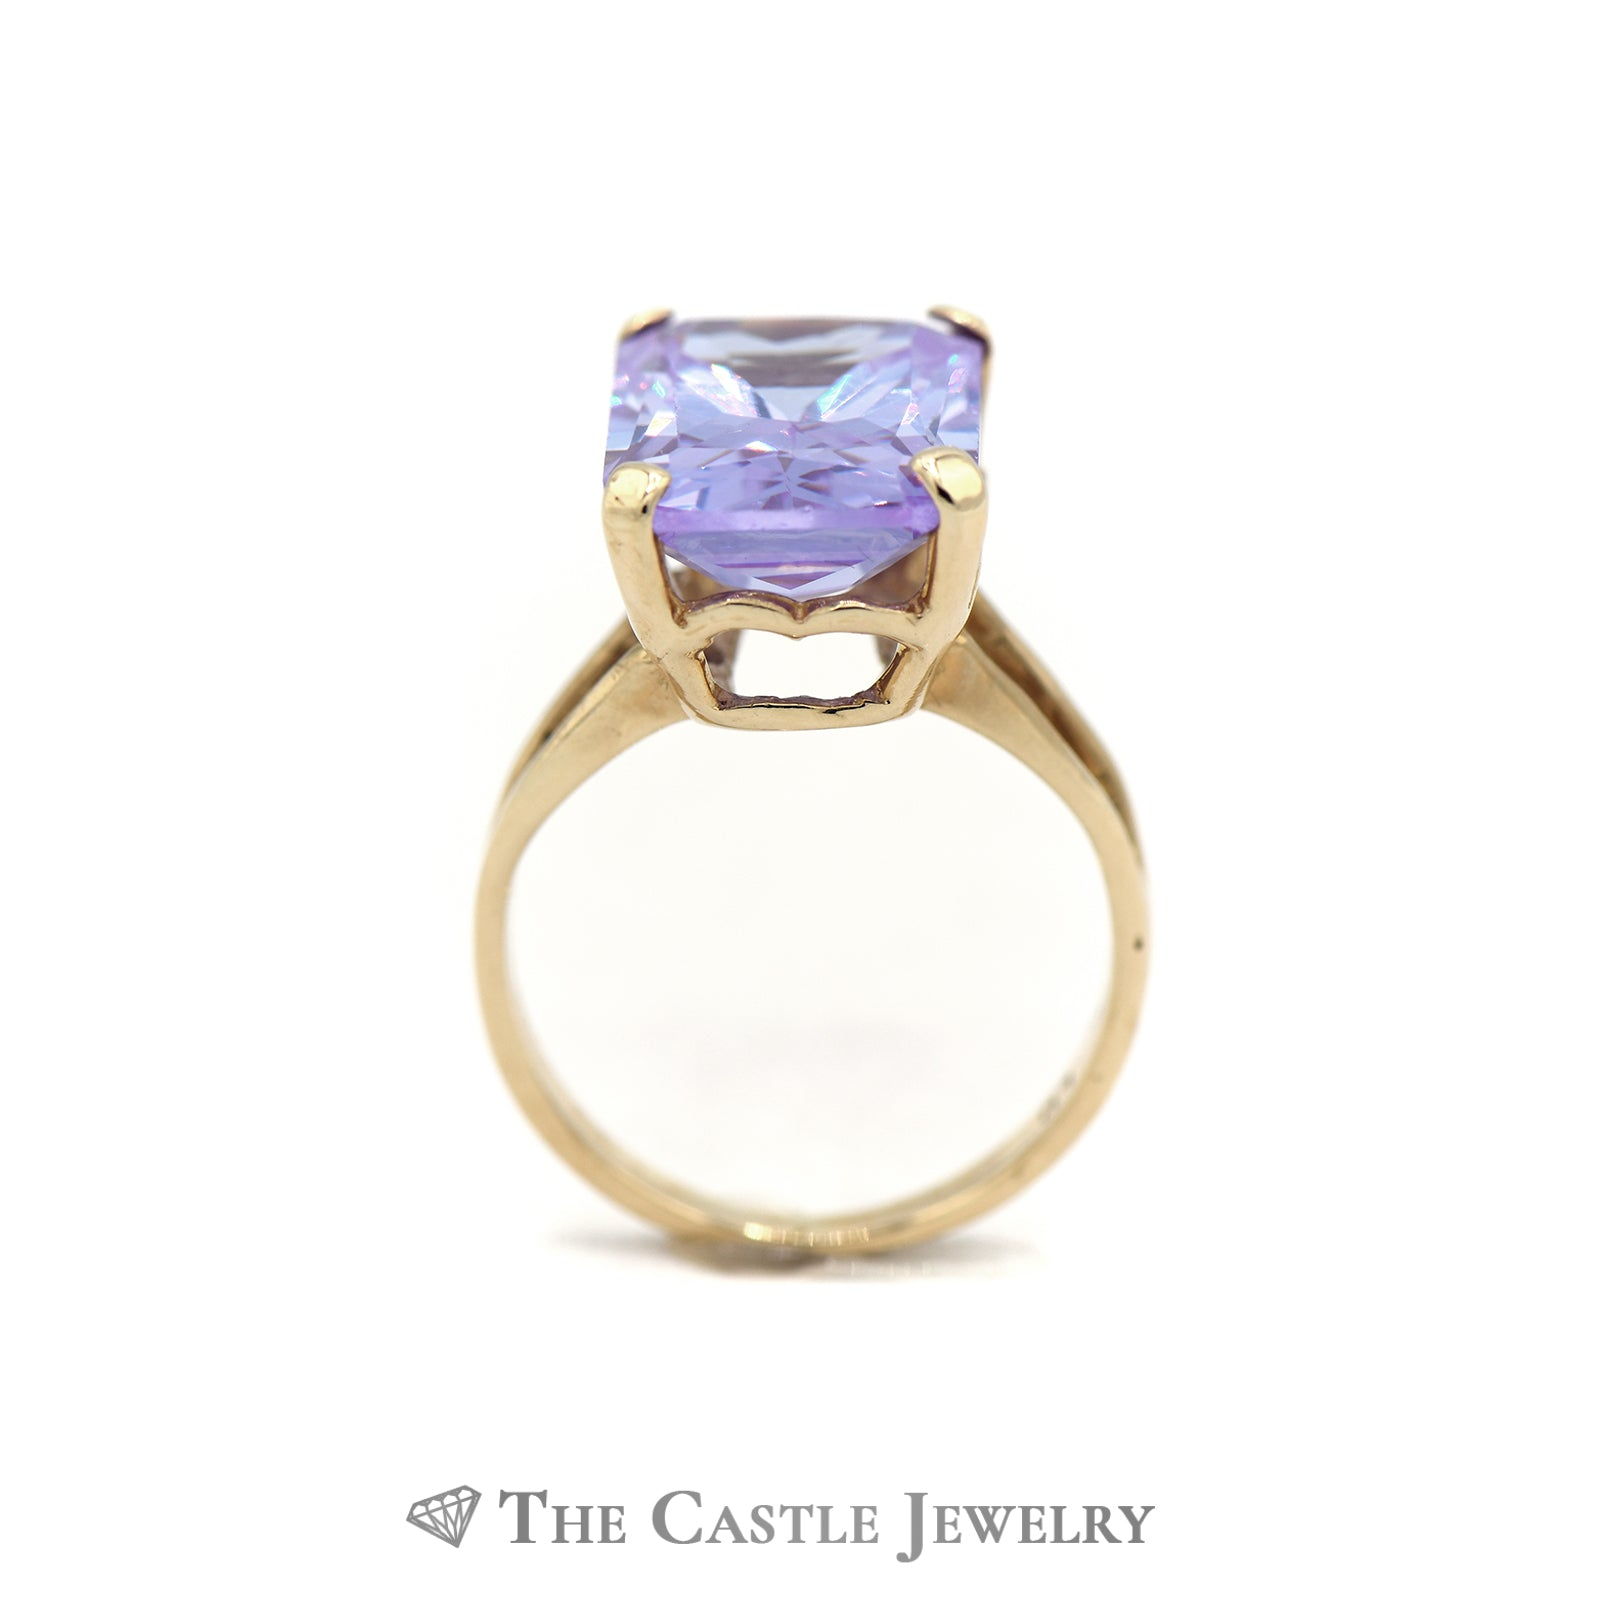 Emerald Cut Lavender Ice Ring in 10k Yellow Gold Split Shank Setting-1